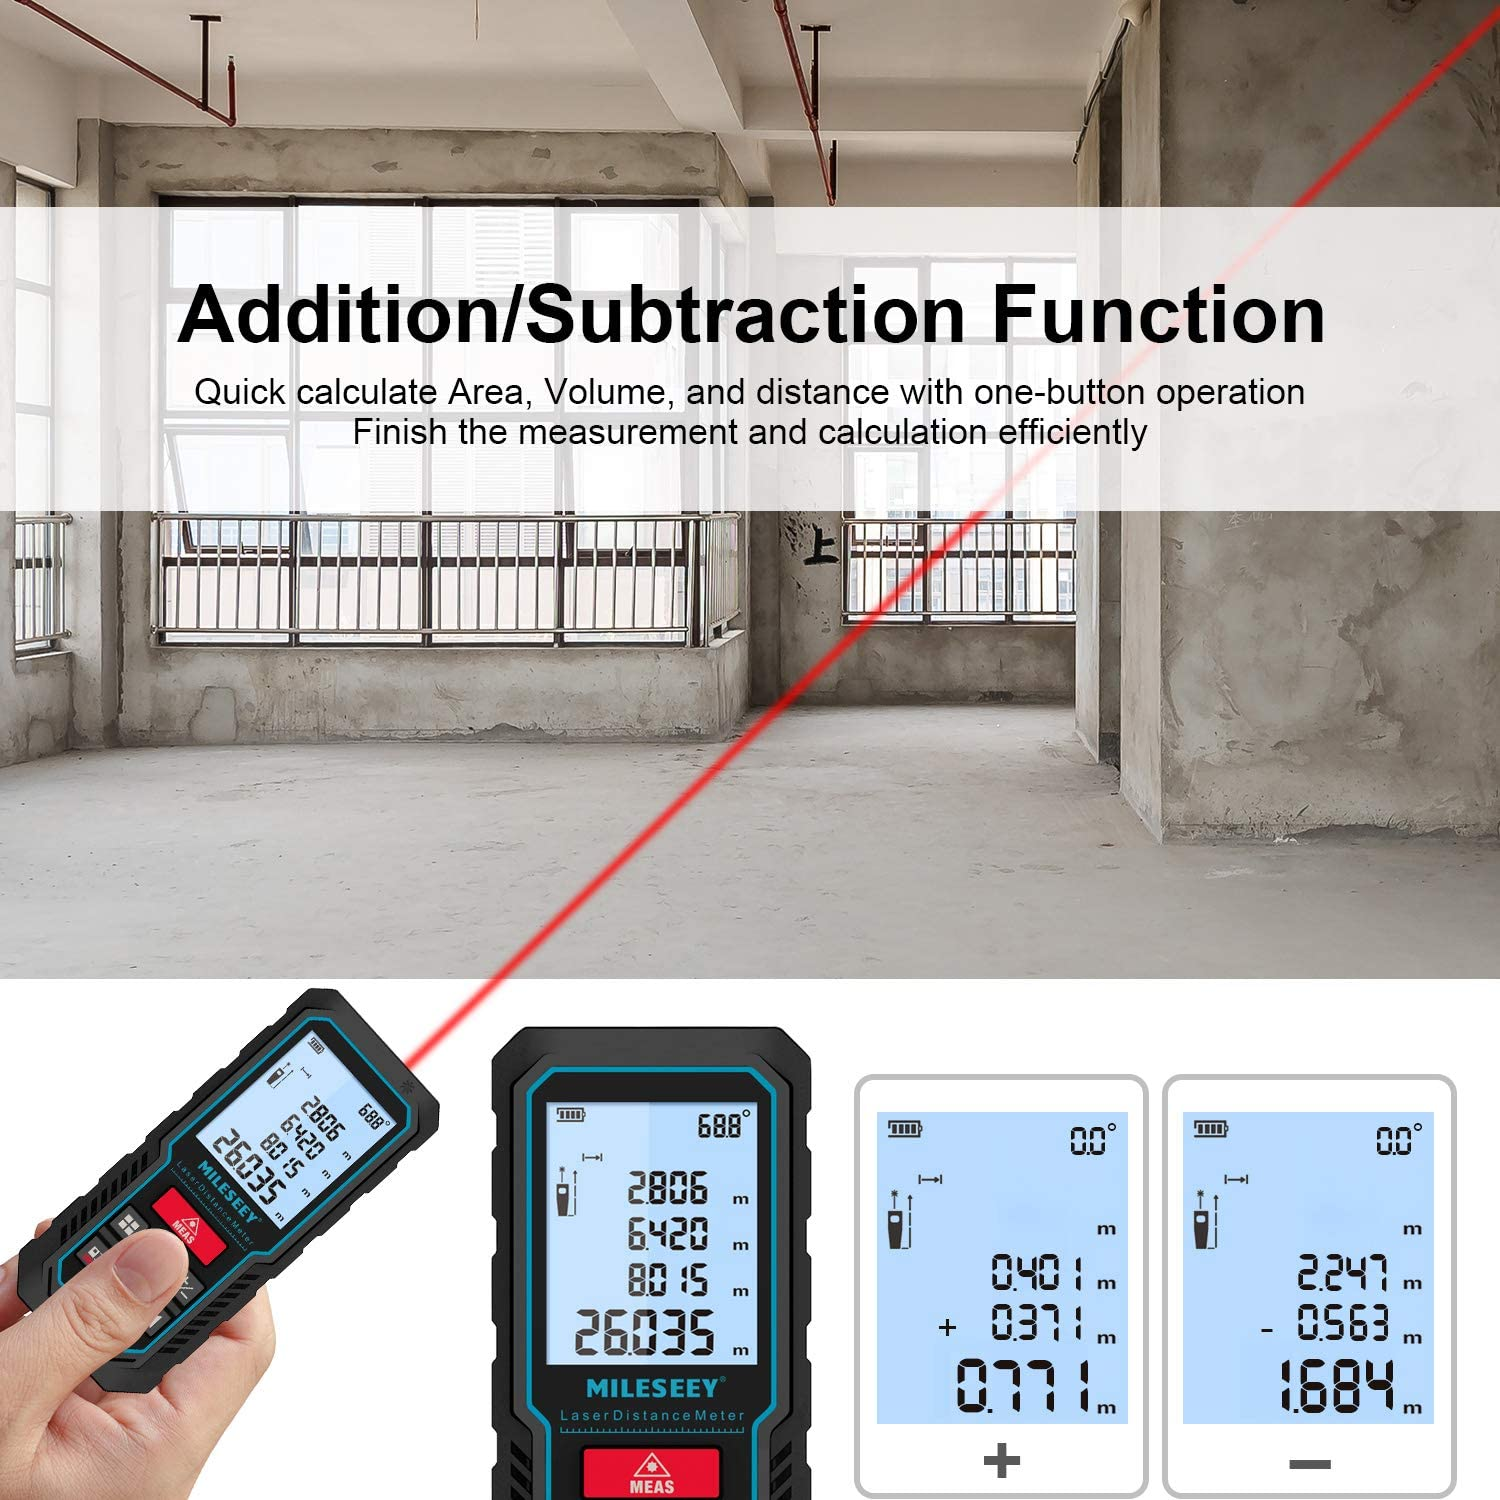 70M Laser Measure Area and Volume /±2mm Accuracy Distance 393ft Digital Laser Distance Meter with Upgraded Electronic Angle Sensor Battery Included Backlit LCD Display Mute Function Pythagoras